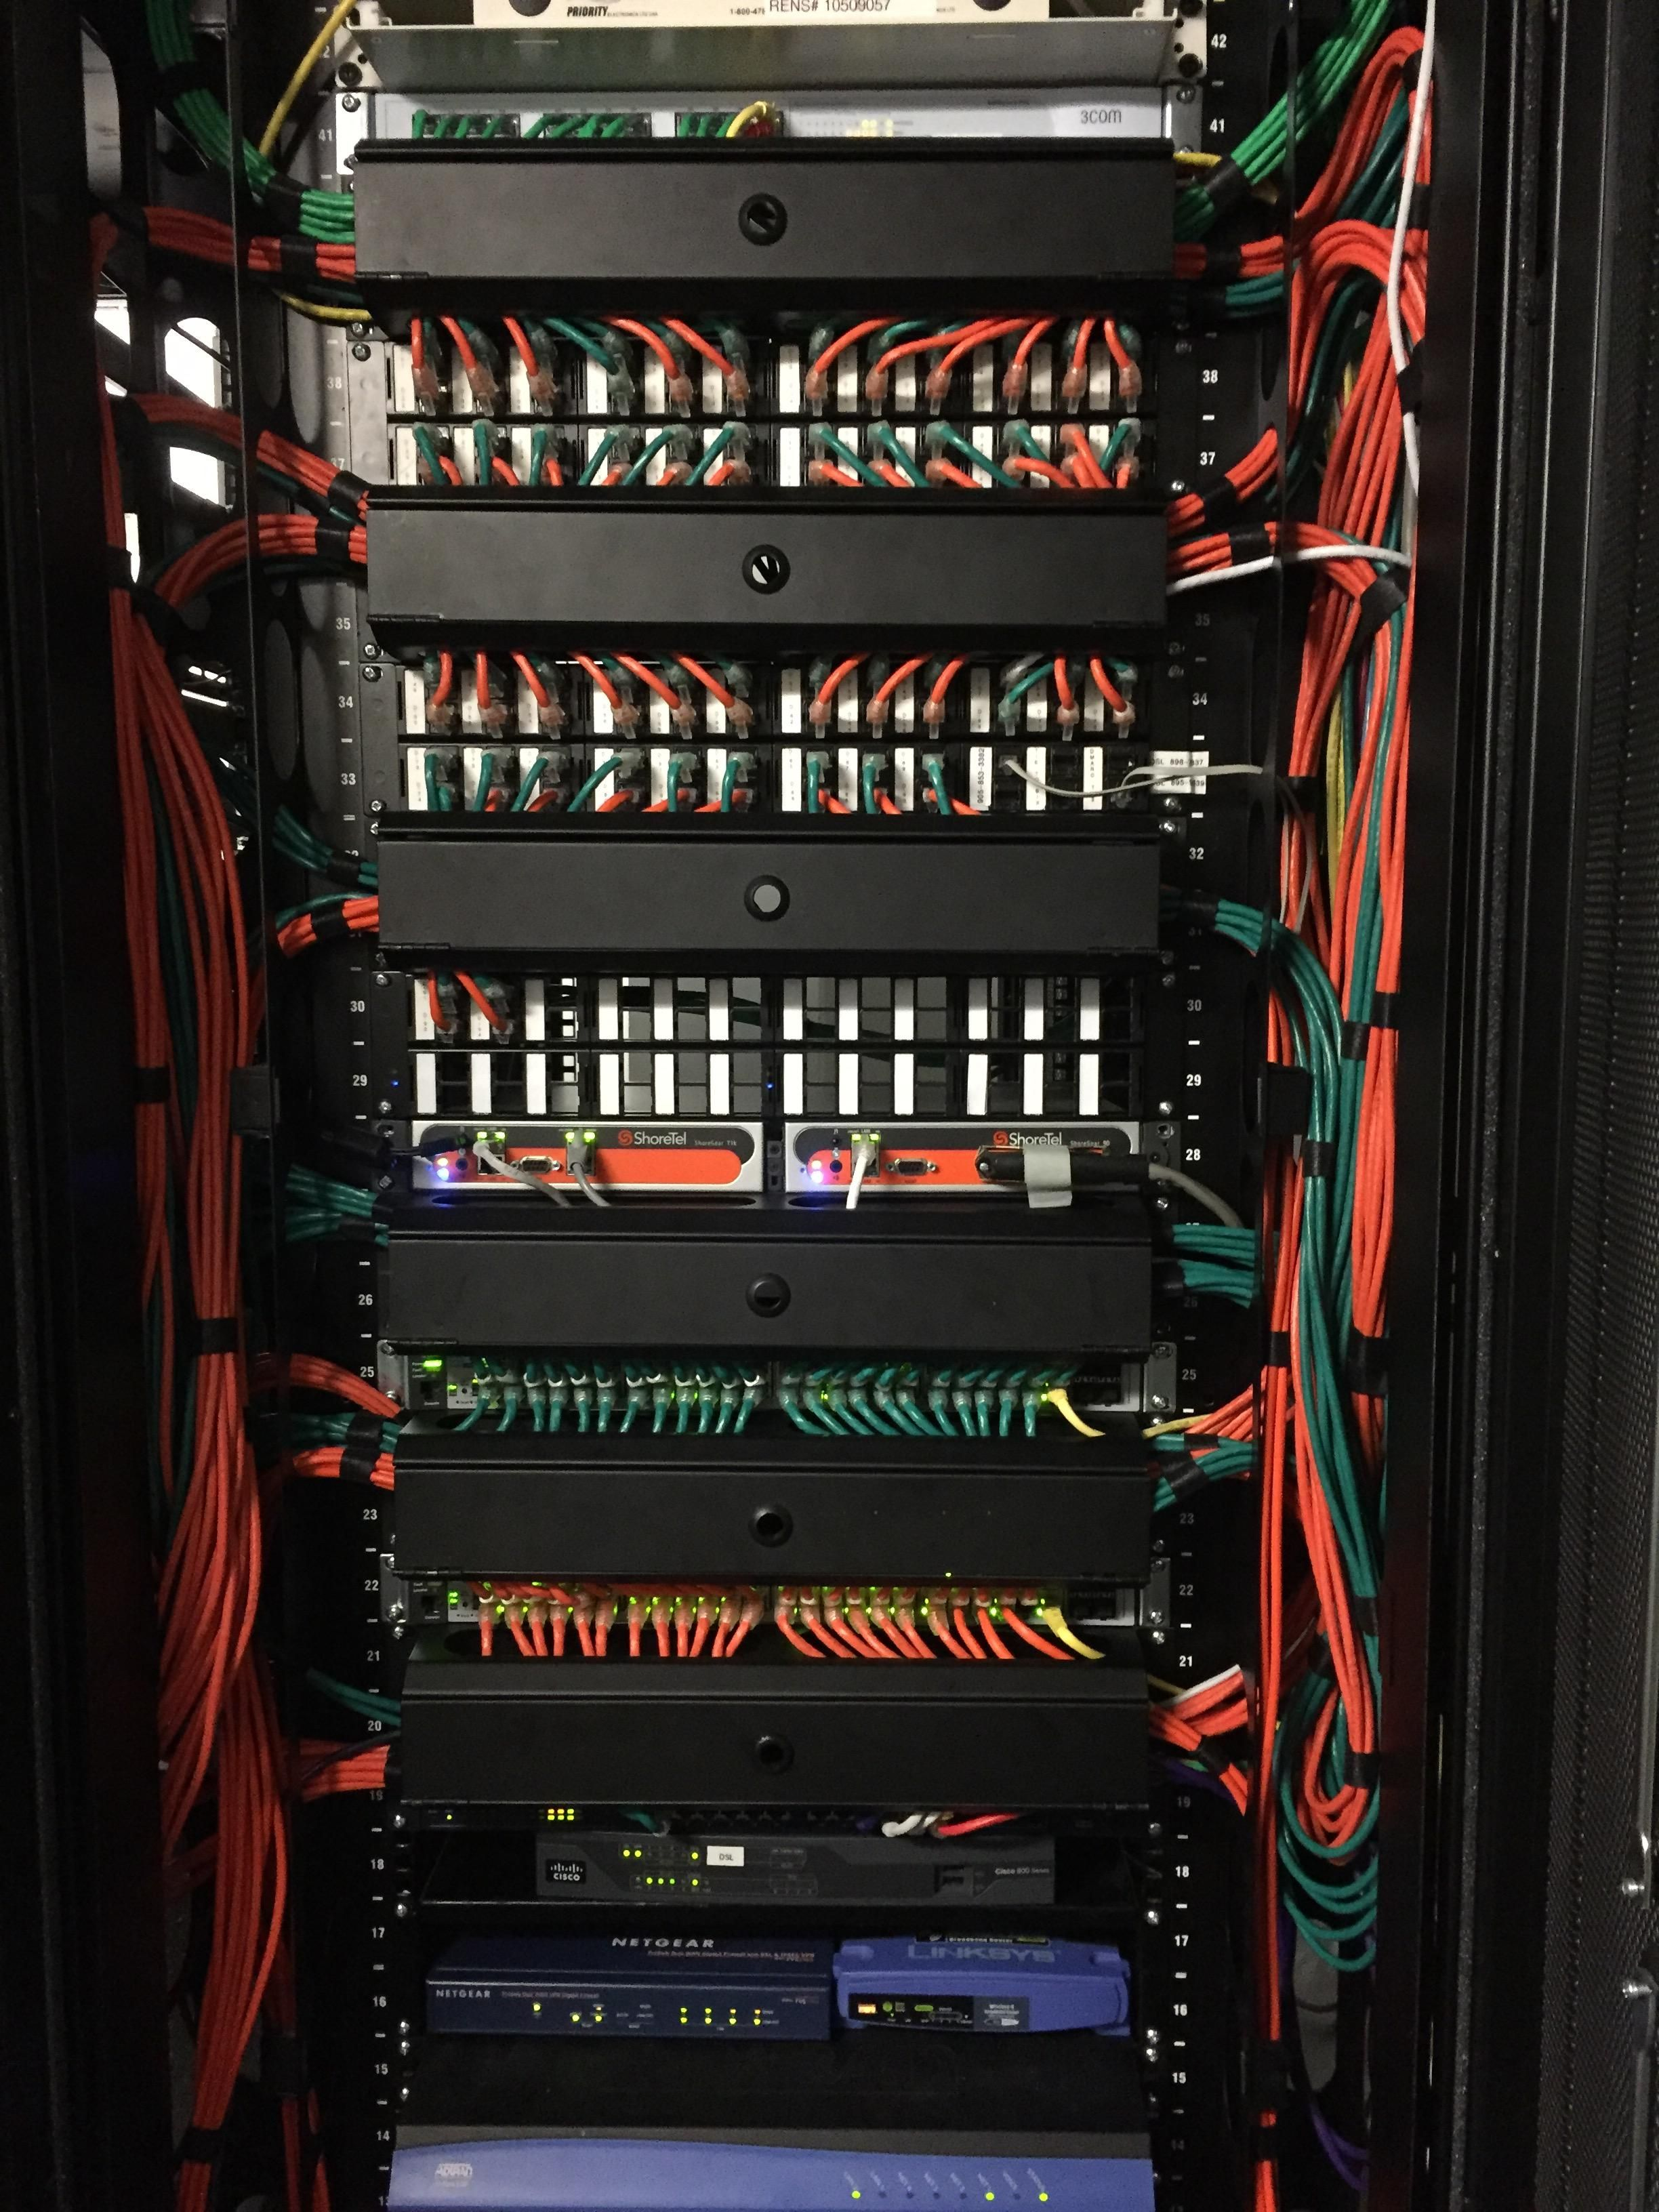 my first server rack cabling job | Business networking, Cloud ...